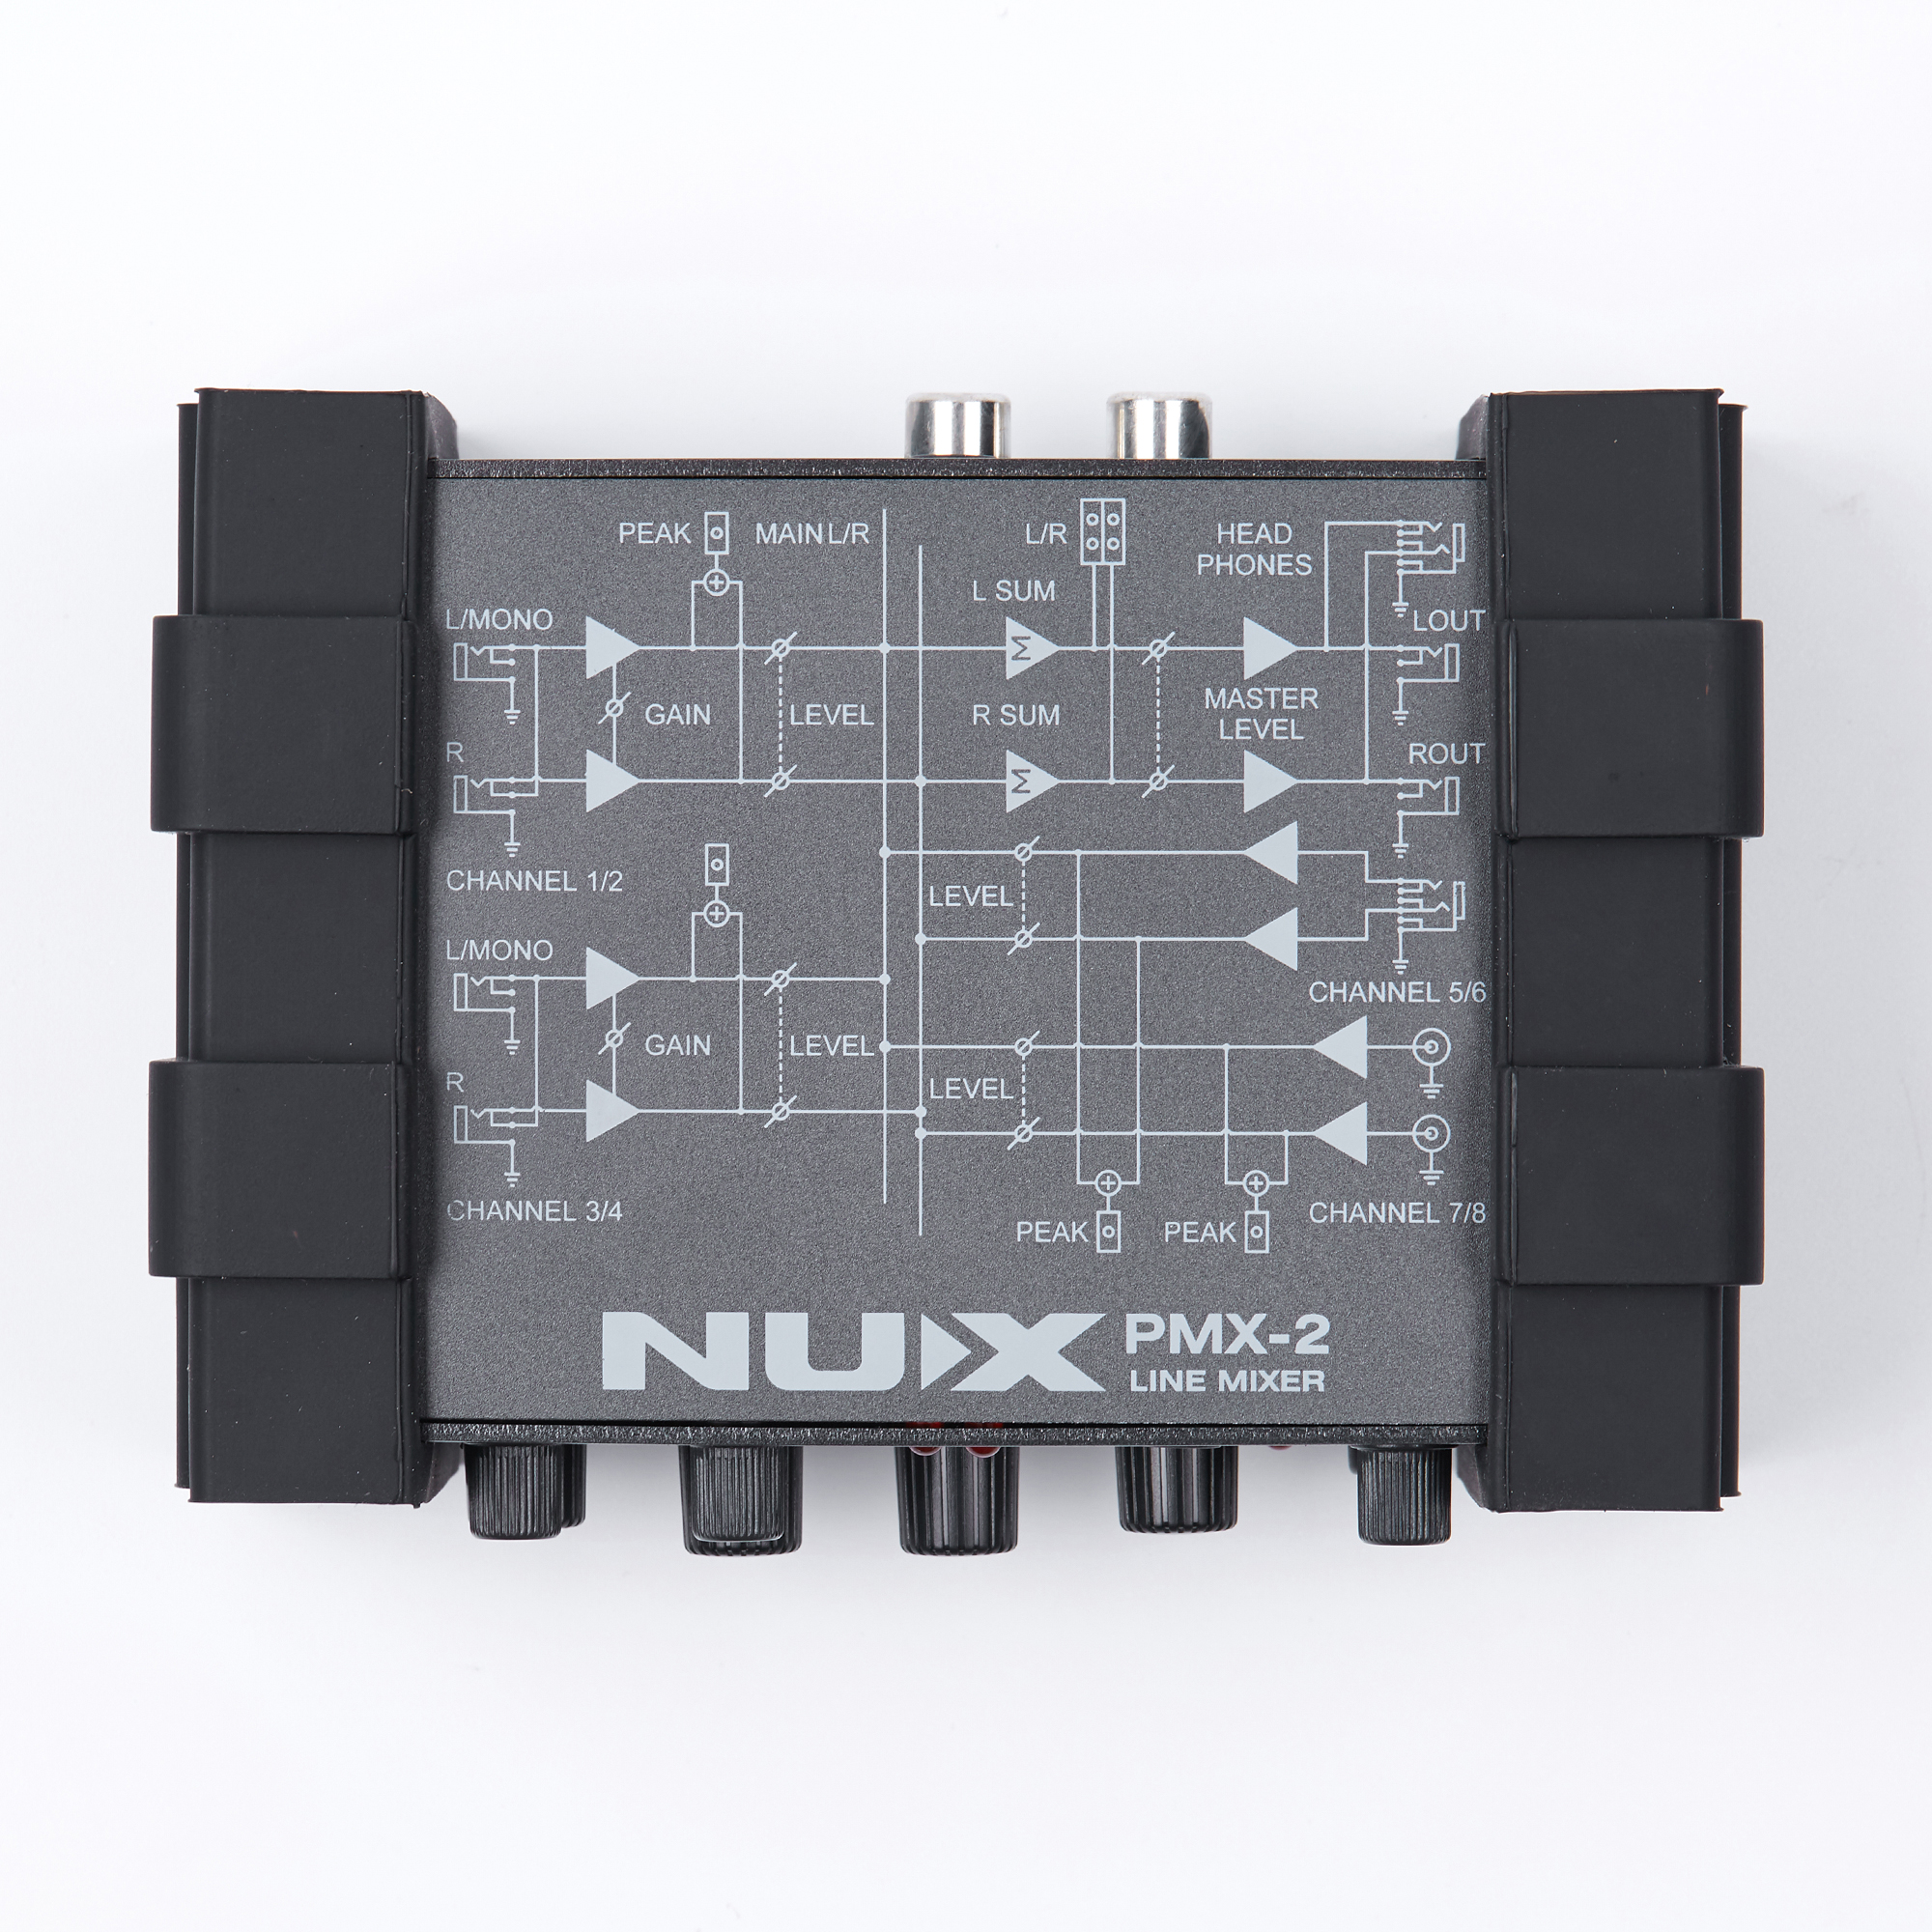 Gain Control 8 Inputs and 2 Outputs NUX PMX-2 Multi-Channel Mini Mixer 30 Musical Instruments Accessories for Guitar Bass Player игрушка для собак lilli pet веселый мячик с пищалкой ф 7см винил